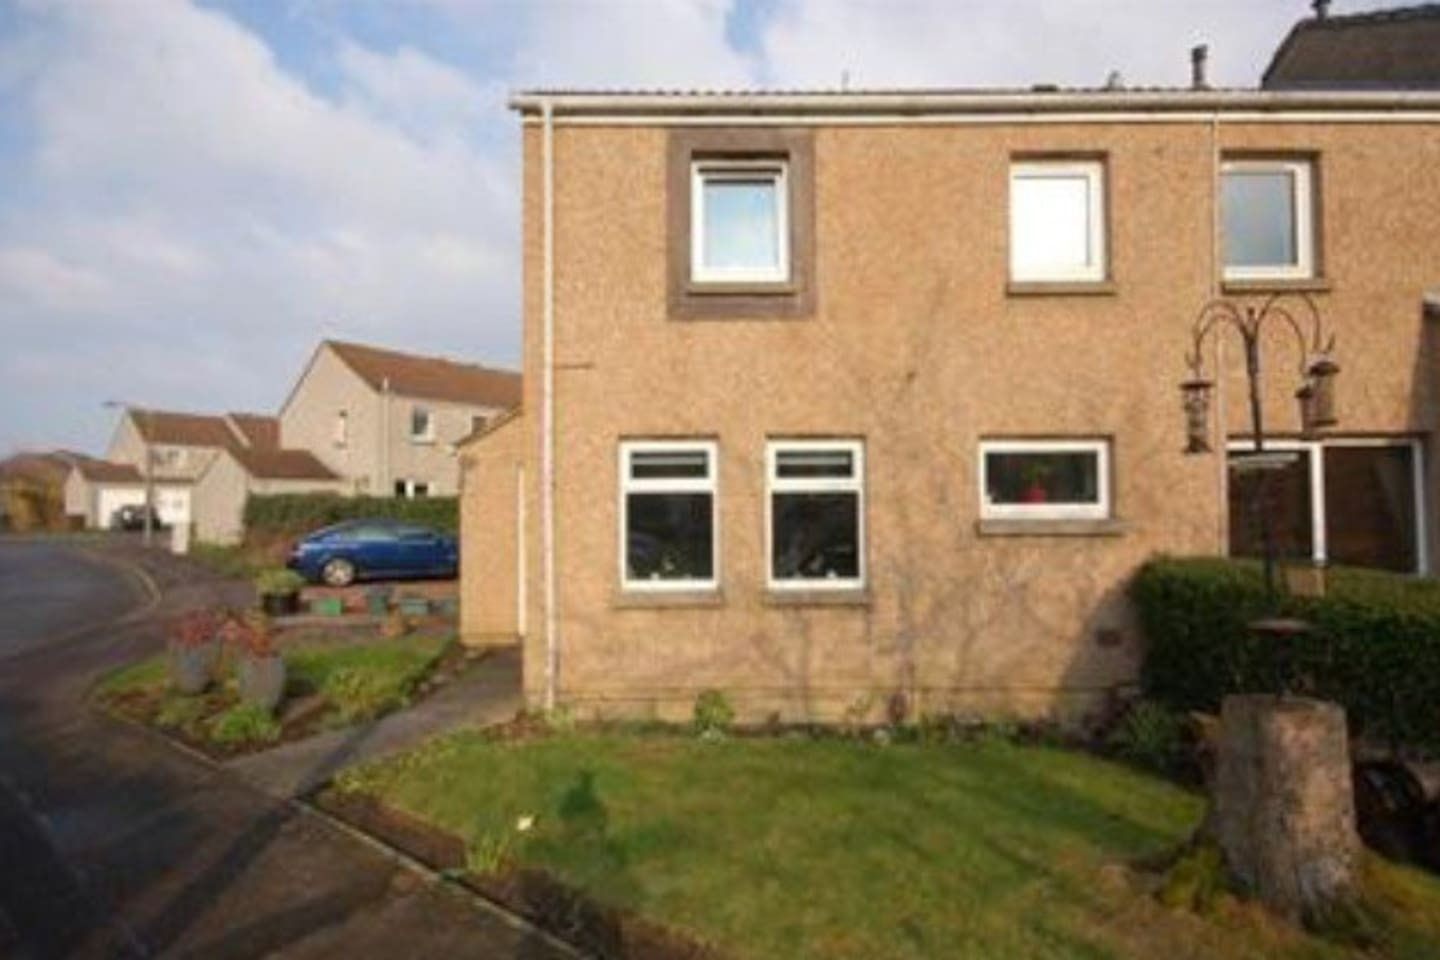 1 bedroom house with garden space and driveway